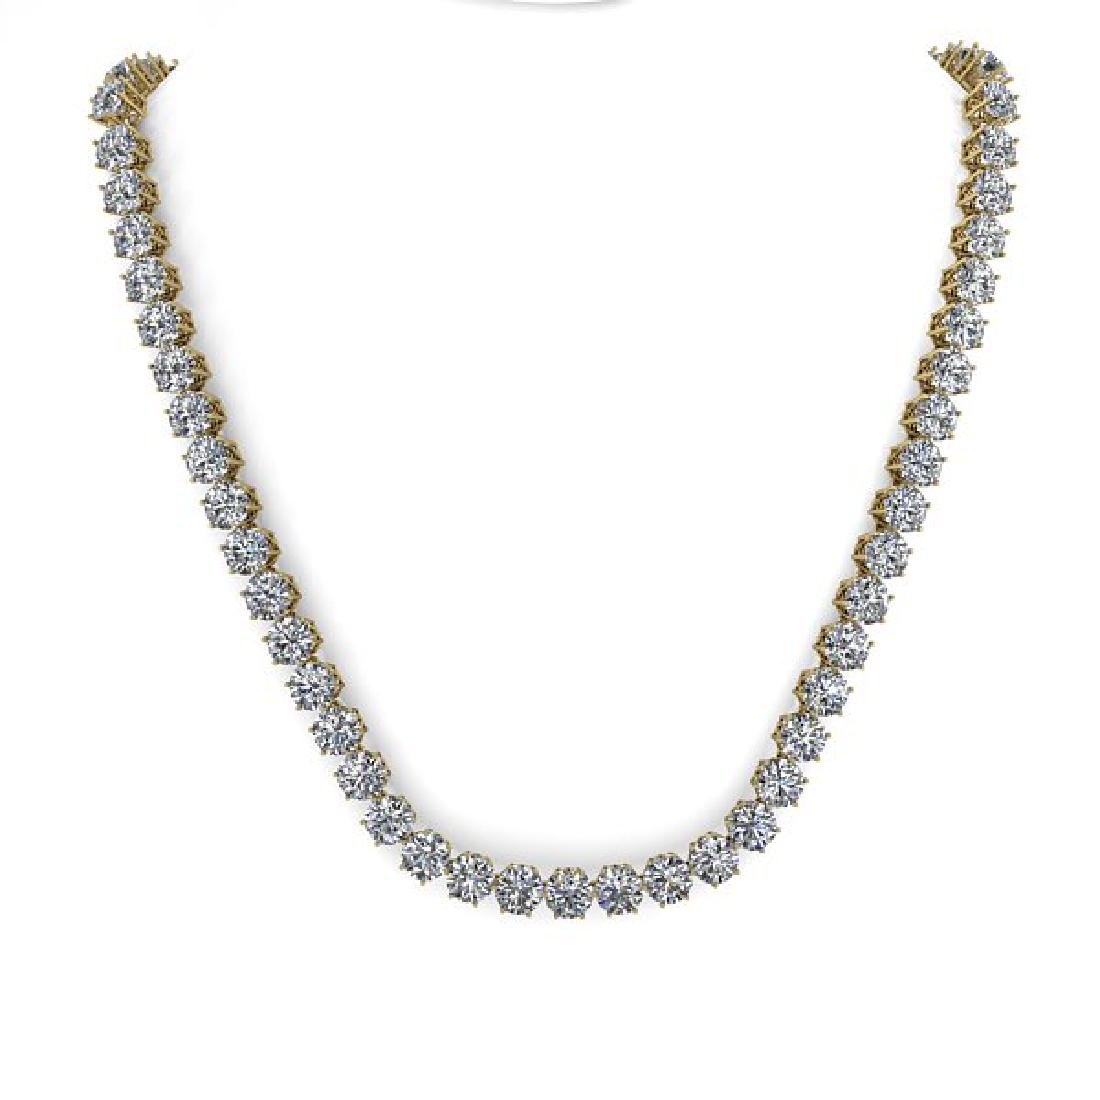 29 CTW SI Certified Diamond Necklace 18K Yellow Gold - 3